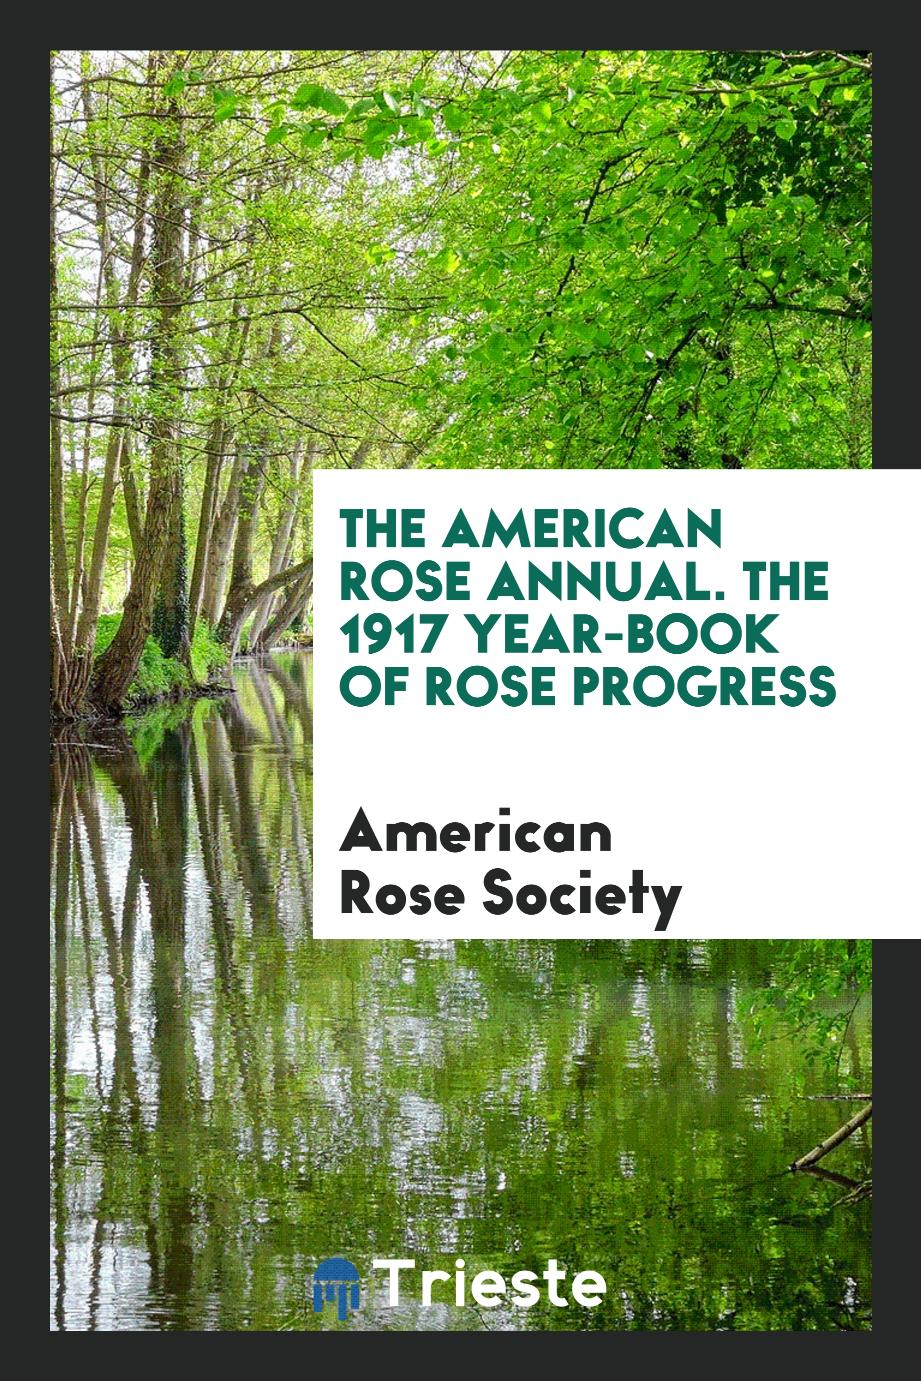 The American Rose Annual. The 1917 Year-Book of Rose Progress